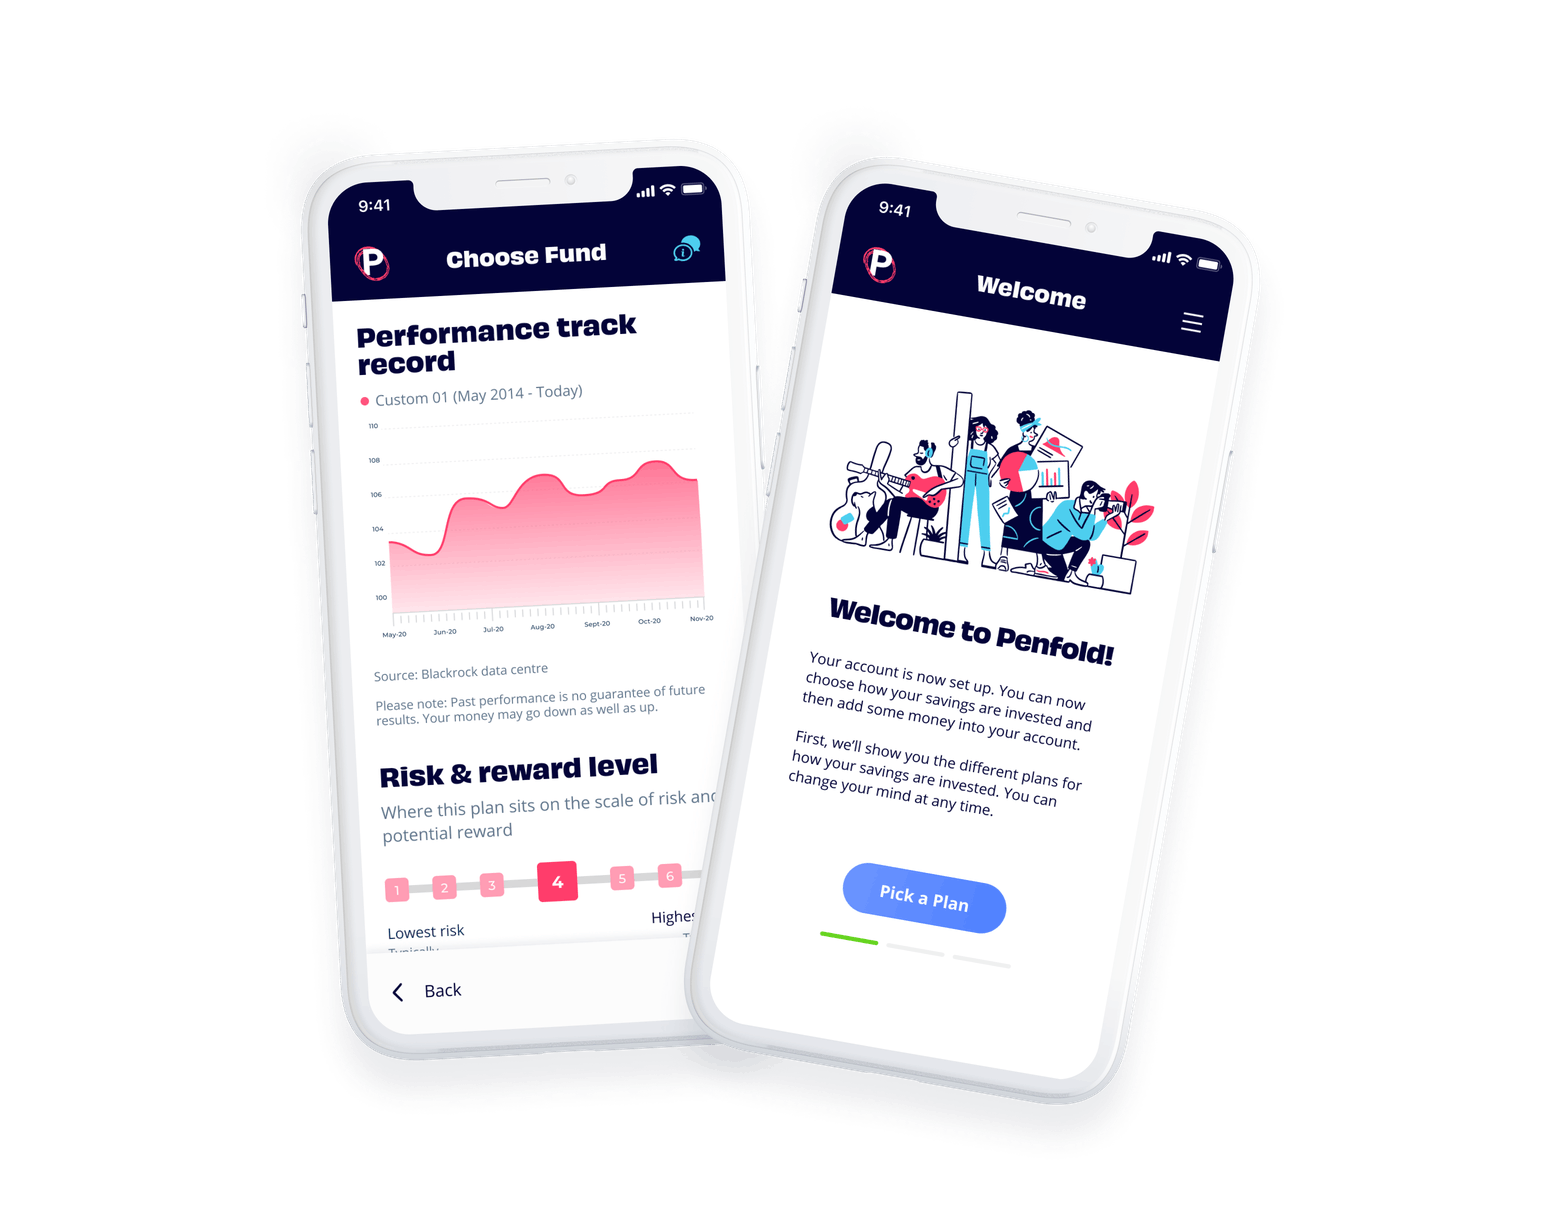 Penfold dashboard and risk selection screens